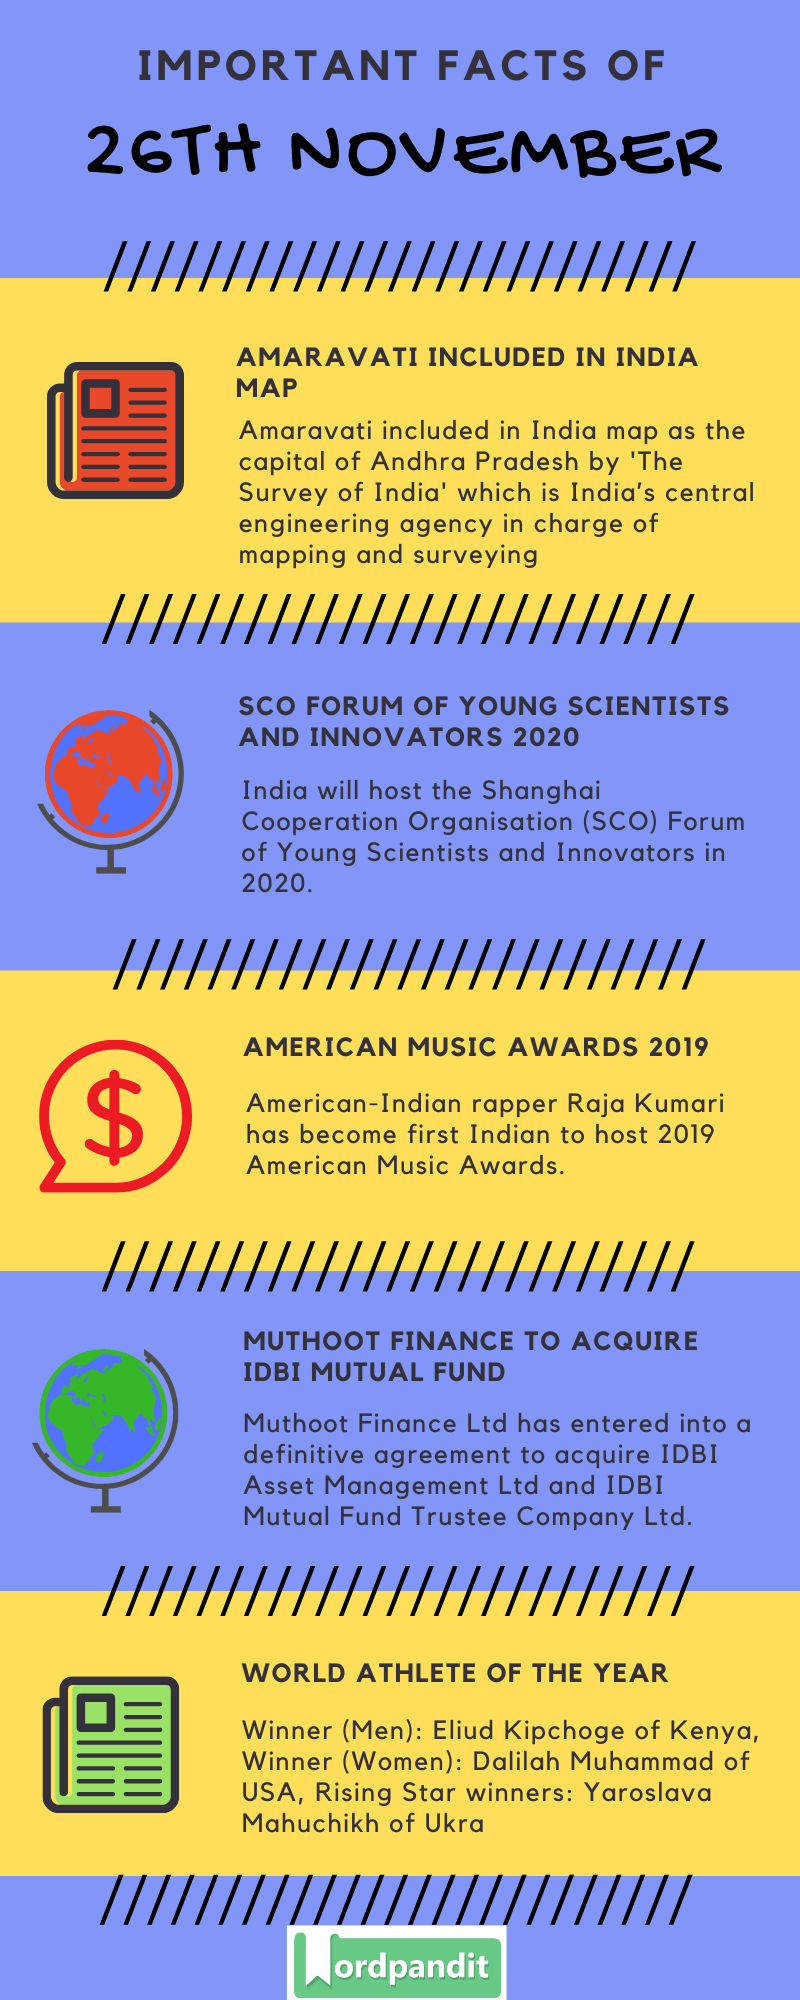 Daily Current Affairs 26 November 2019 Current Affairs Quiz 26 November 2019 Current Affairs Infographic